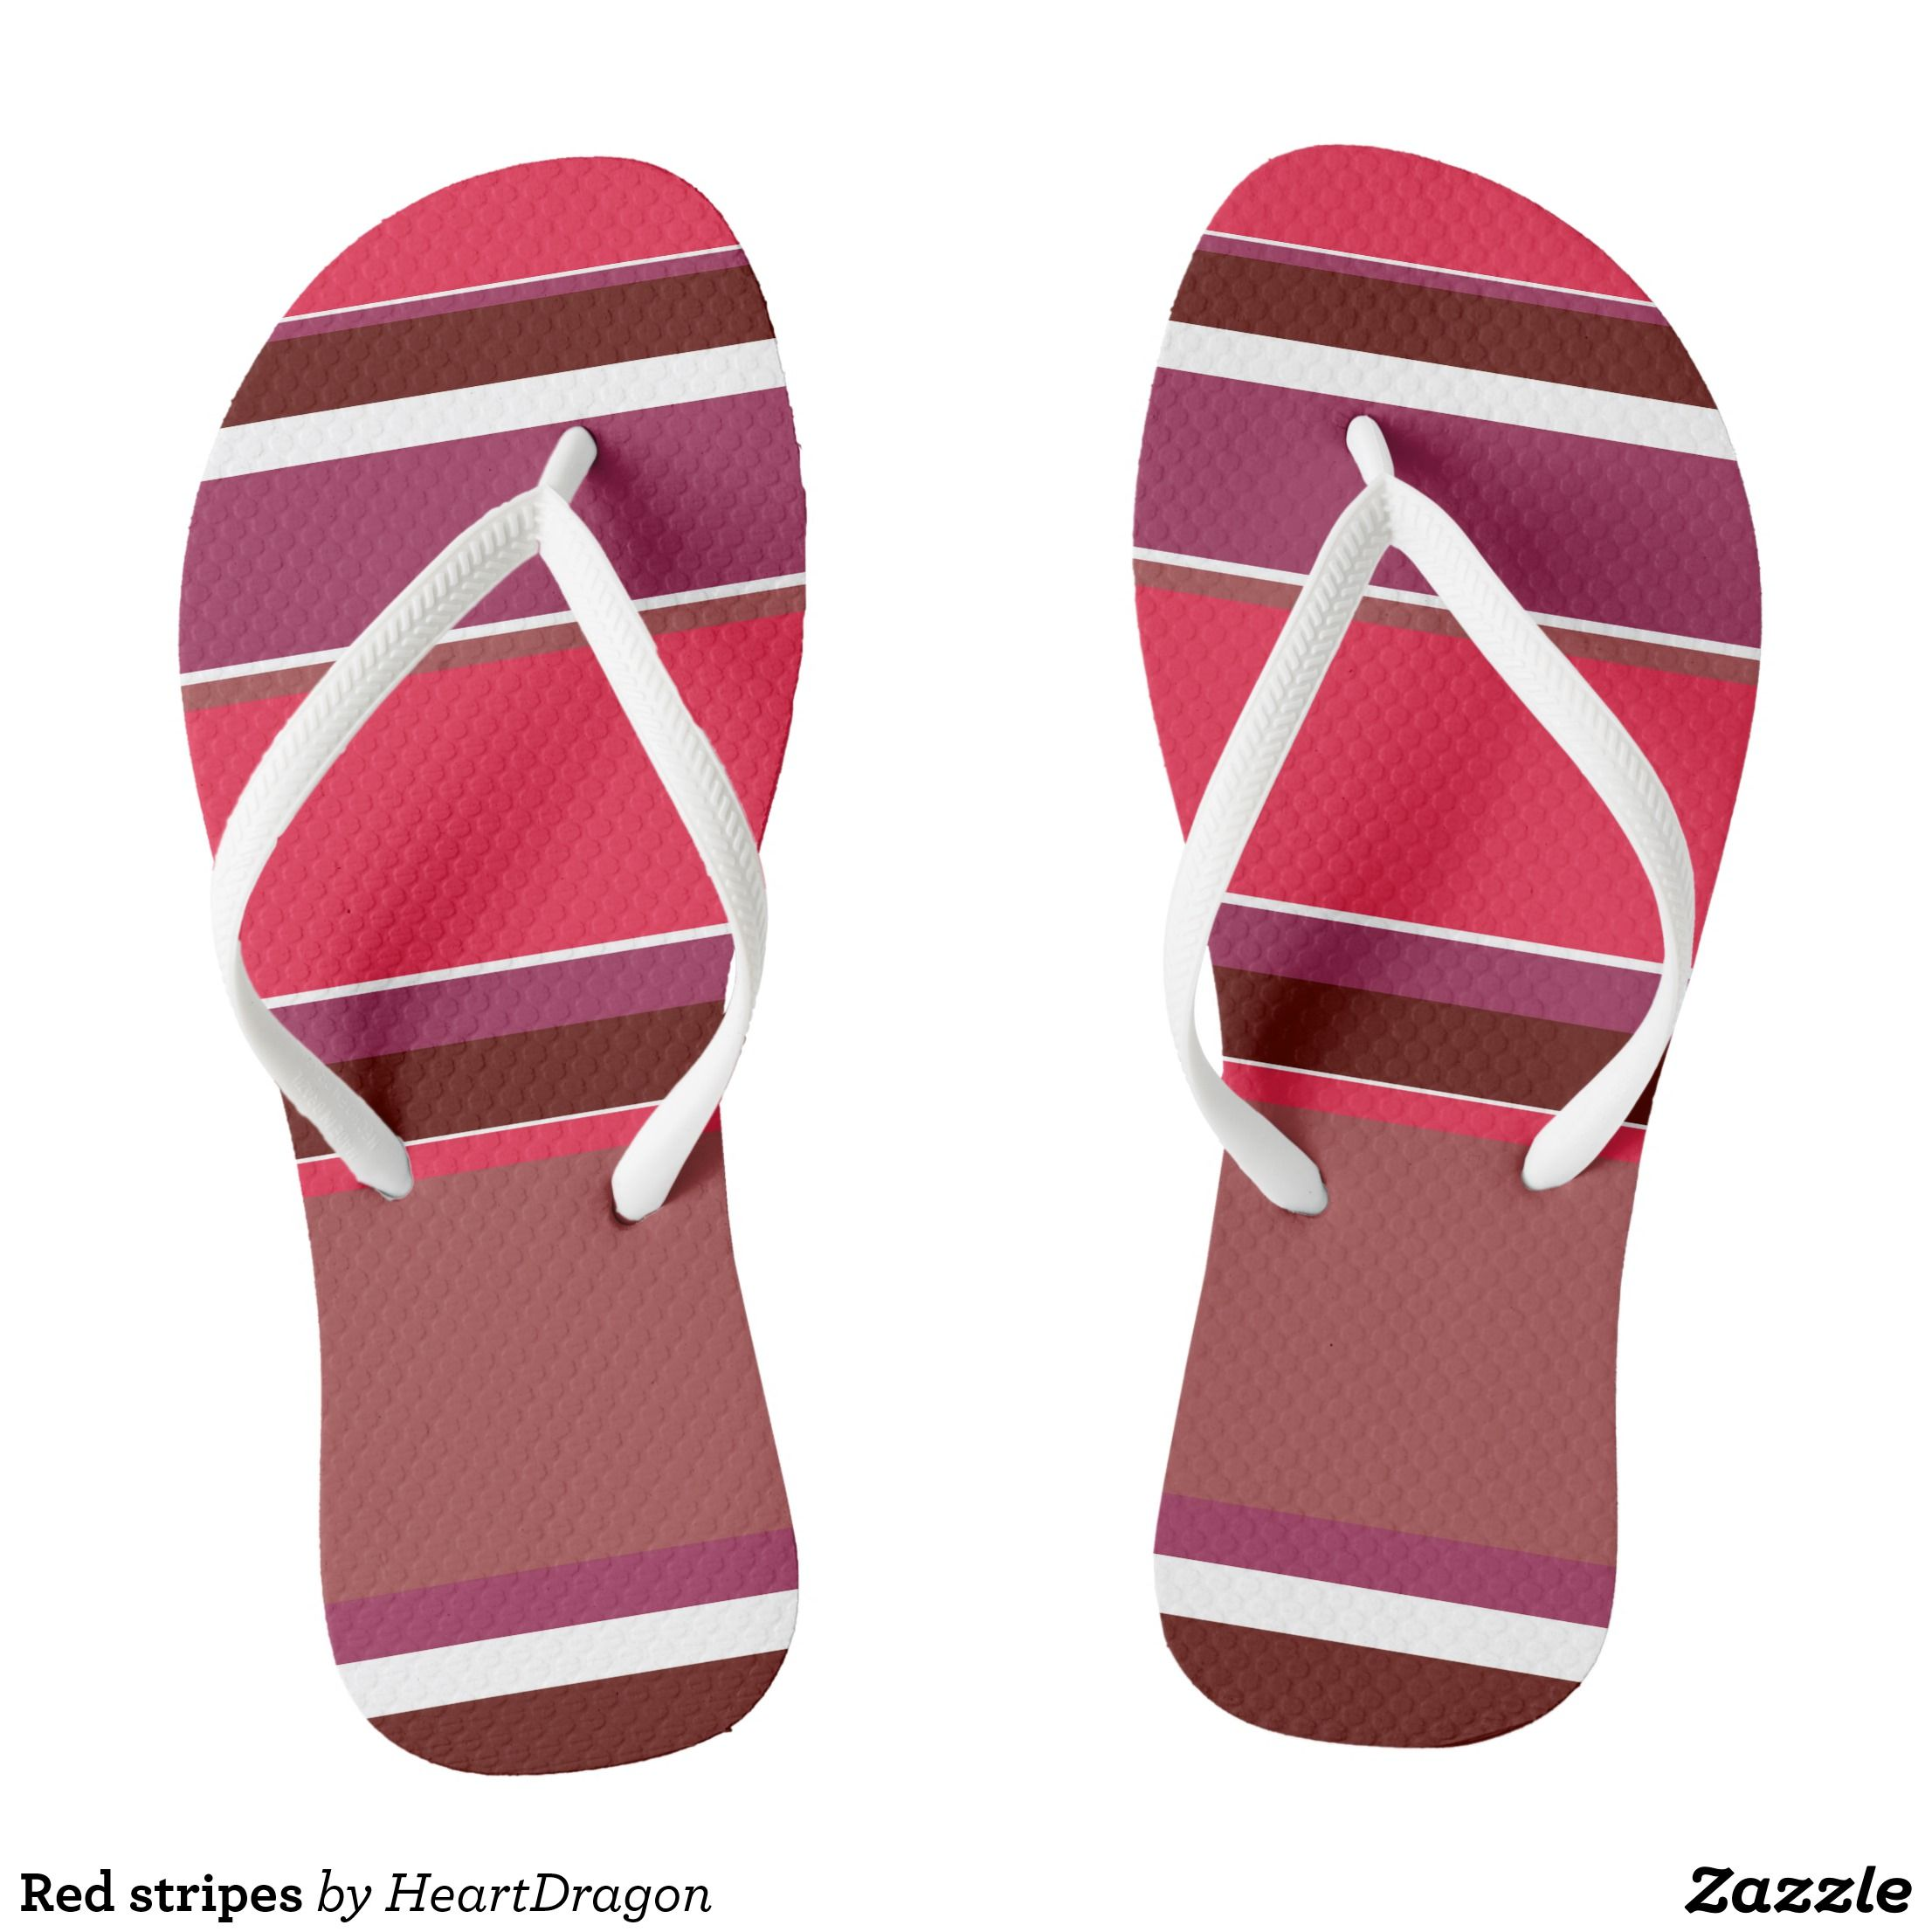 09f778522c913 Red stripes flip flops - Canvas-Top Rubber-Sole Athletic Shoes By Talented  Fashion